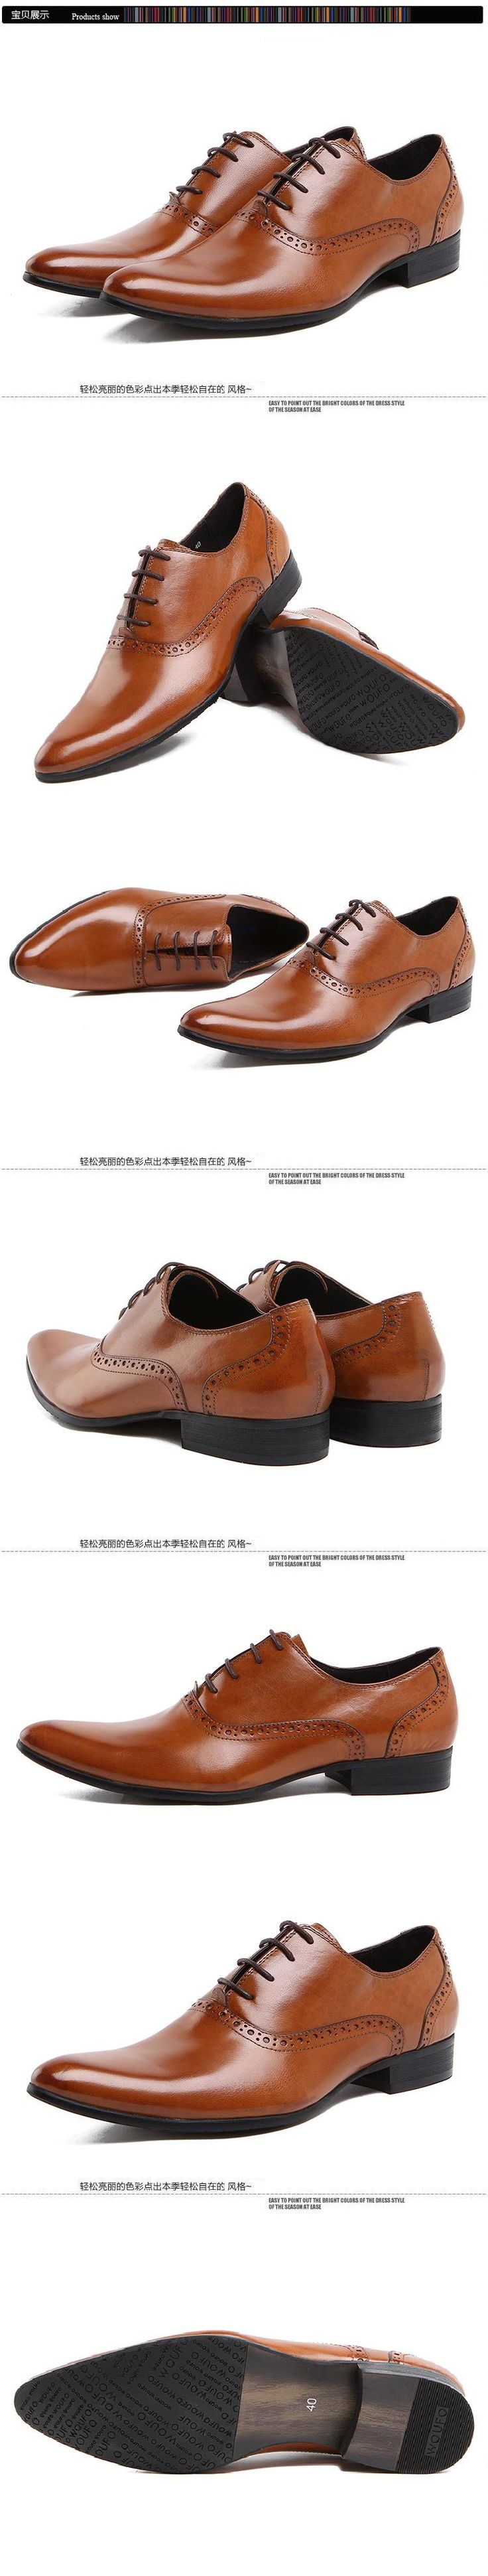 New Fashion Spring And Autumn Full For Grain Leather Pointed Toe British Business Dress Men's Brand Oxfords Shoes Flats